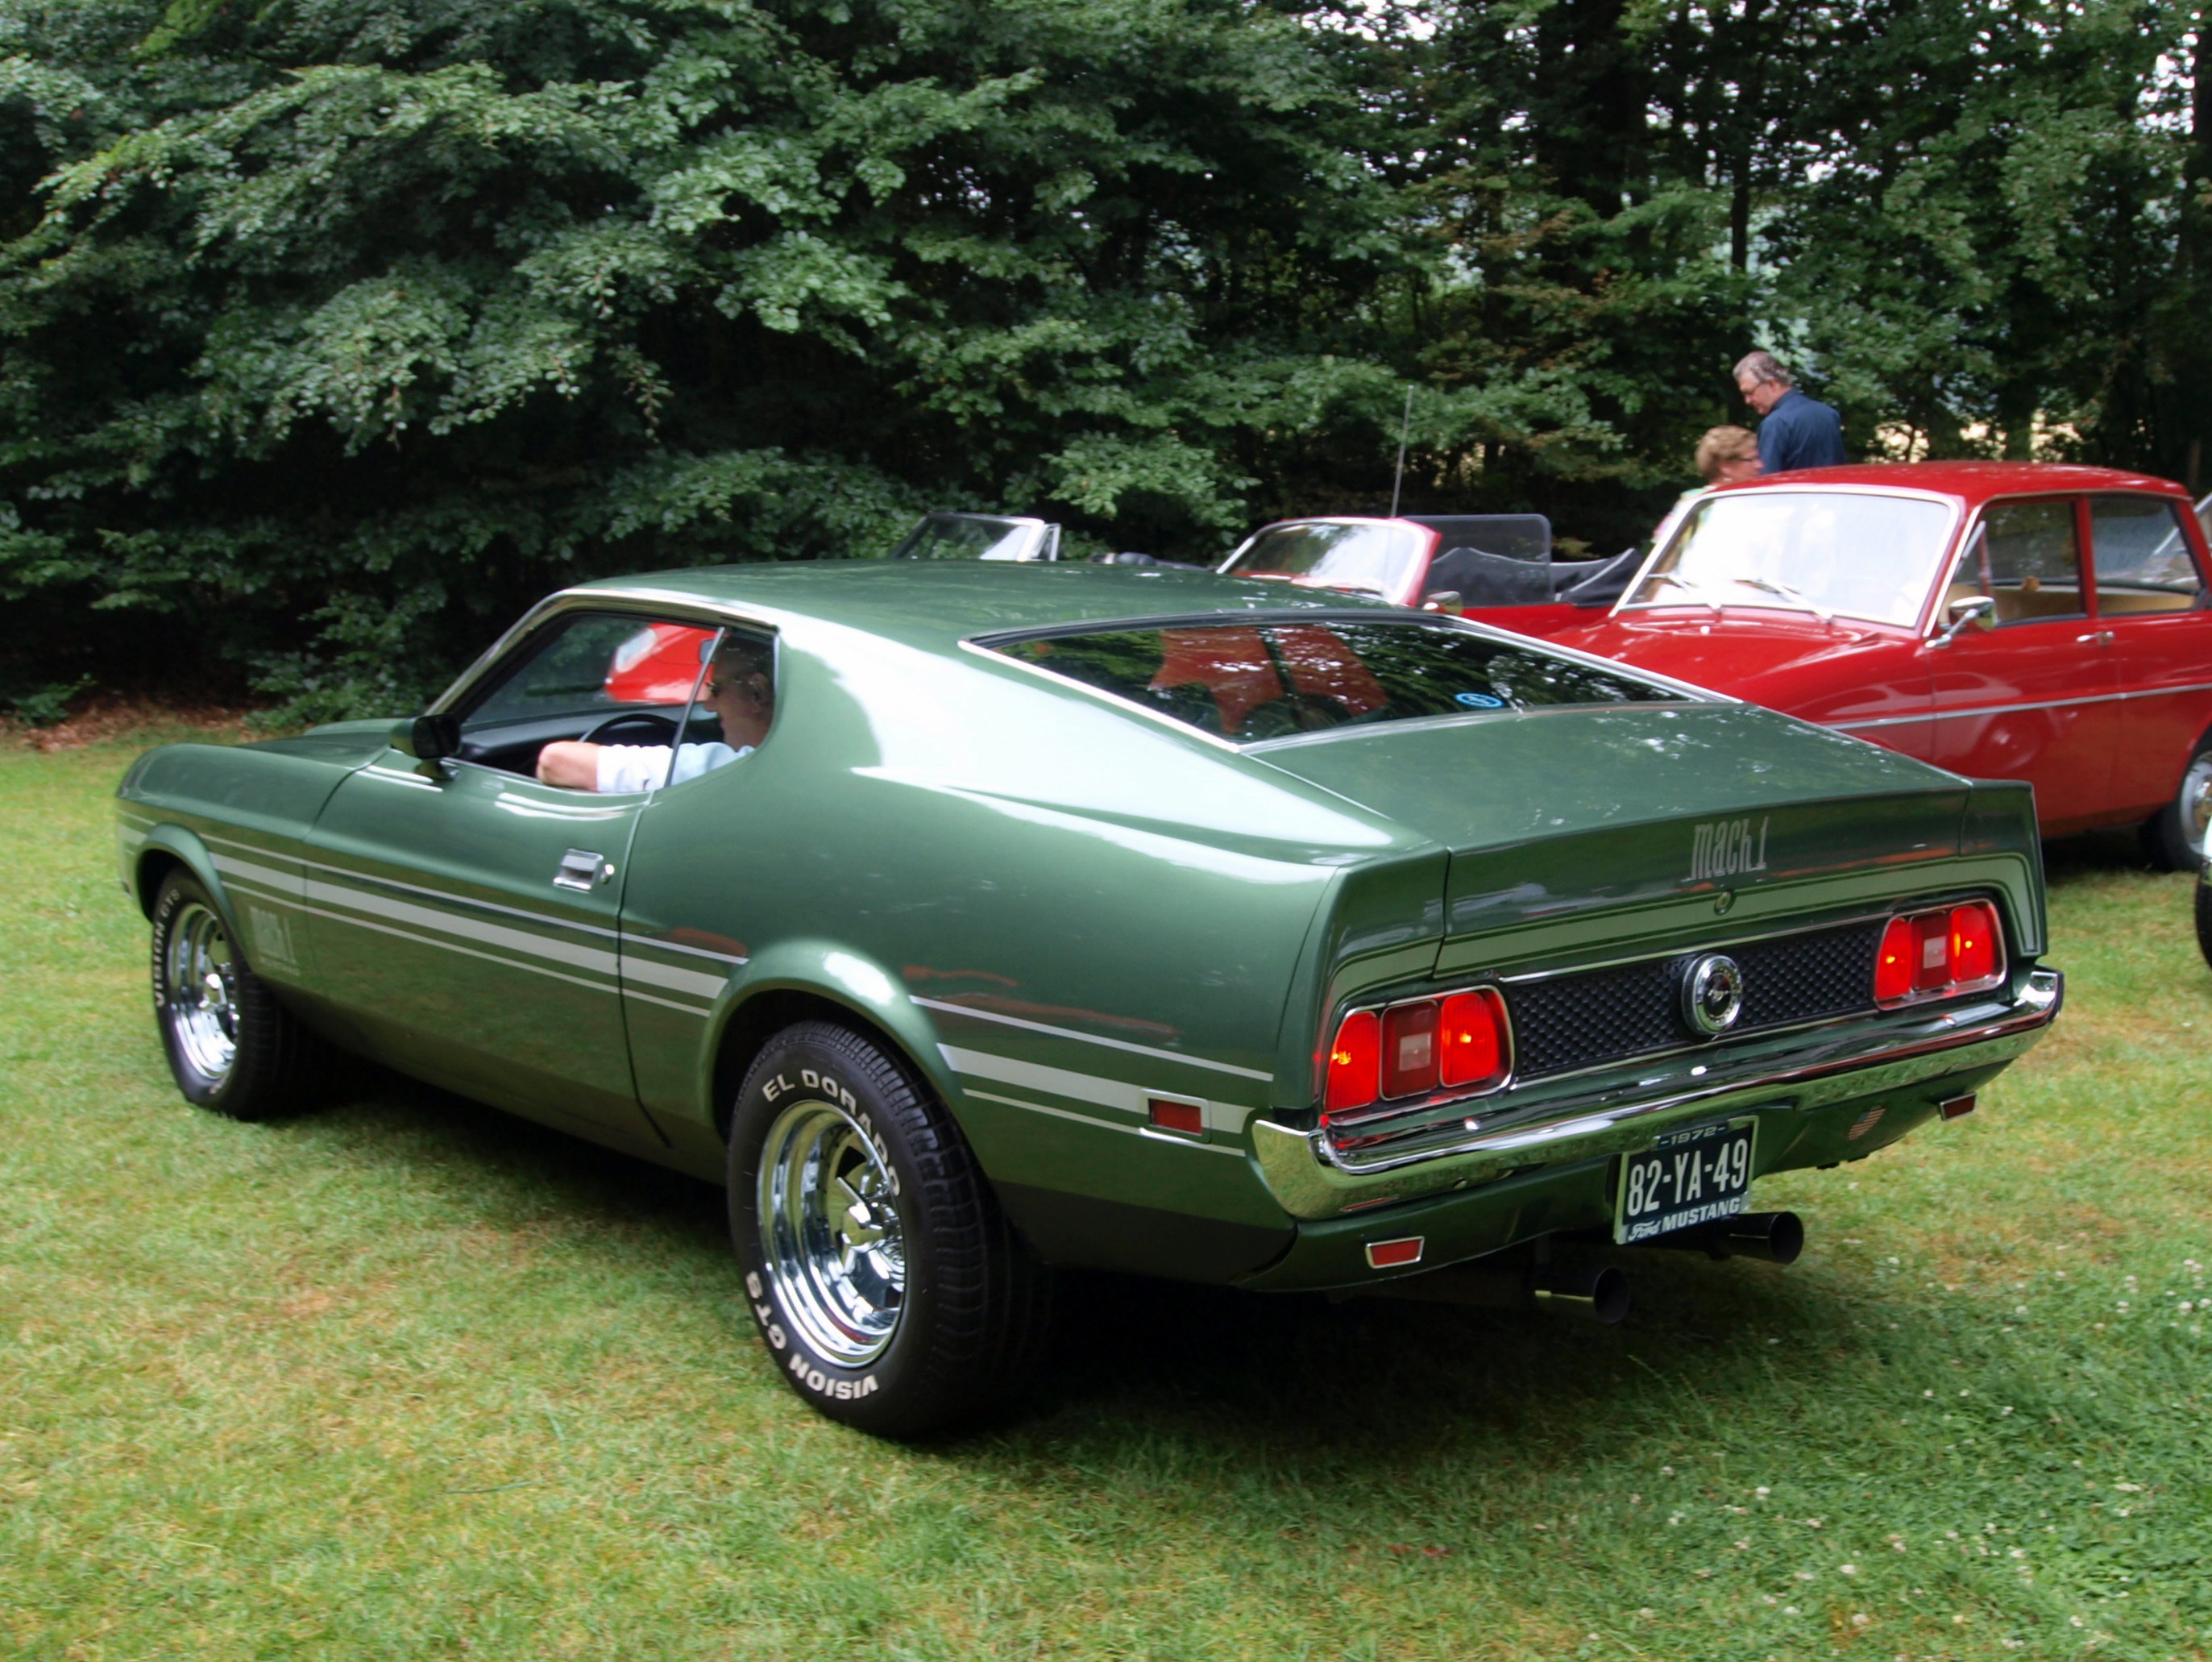 file:ford mustang mach 1 (1973) pic4 - wikimedia commons